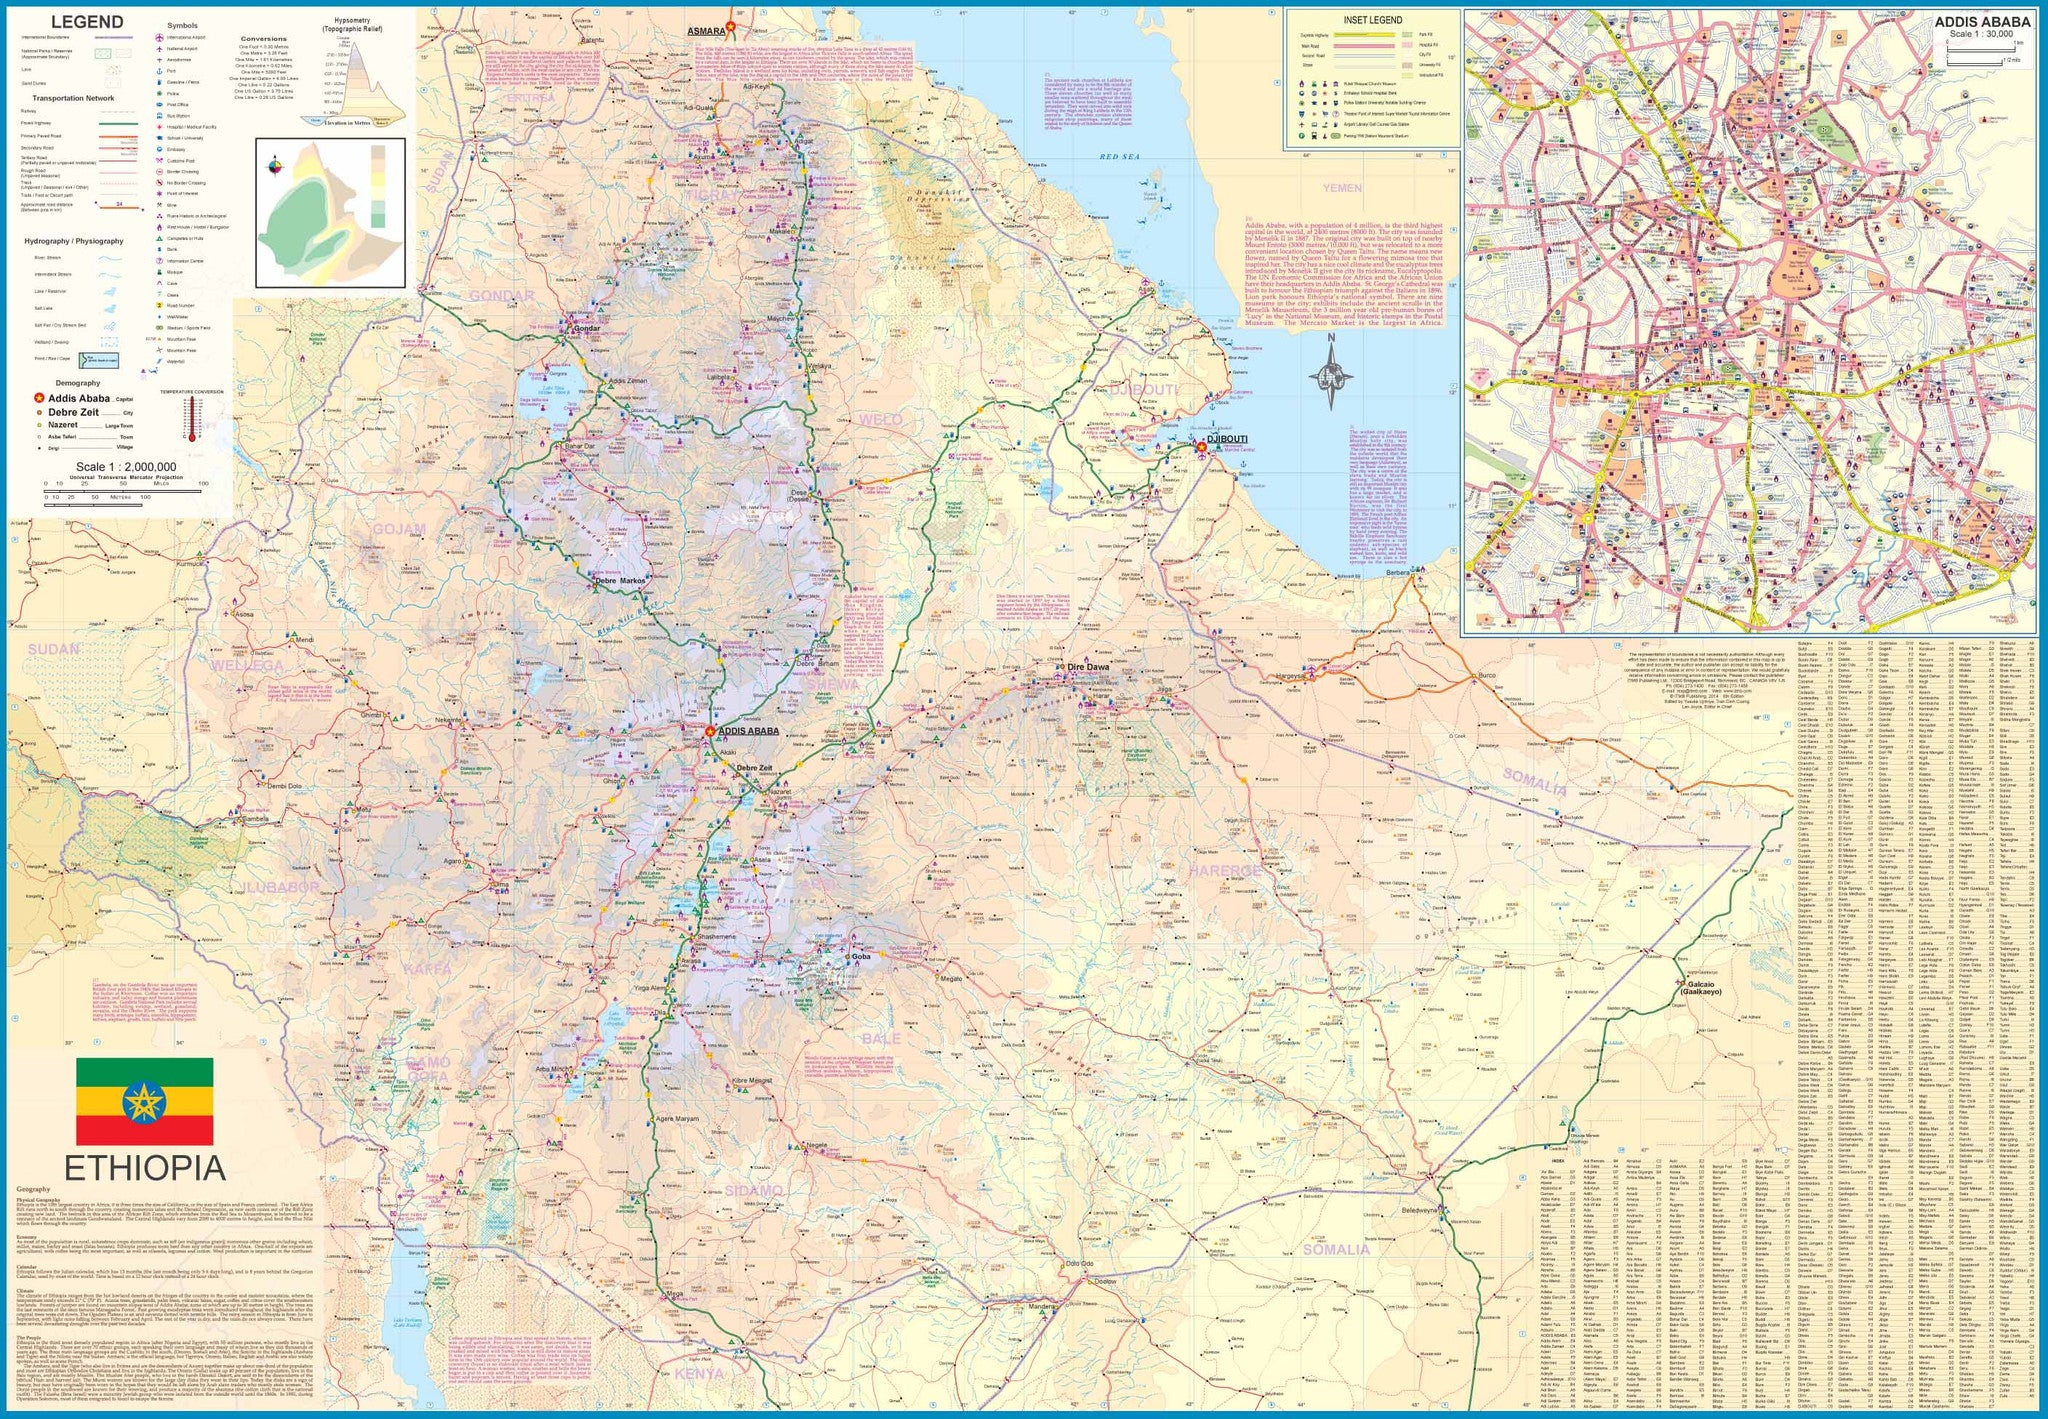 Ethiopia ITMB, Buy Map of Ethiopia - Mapworld